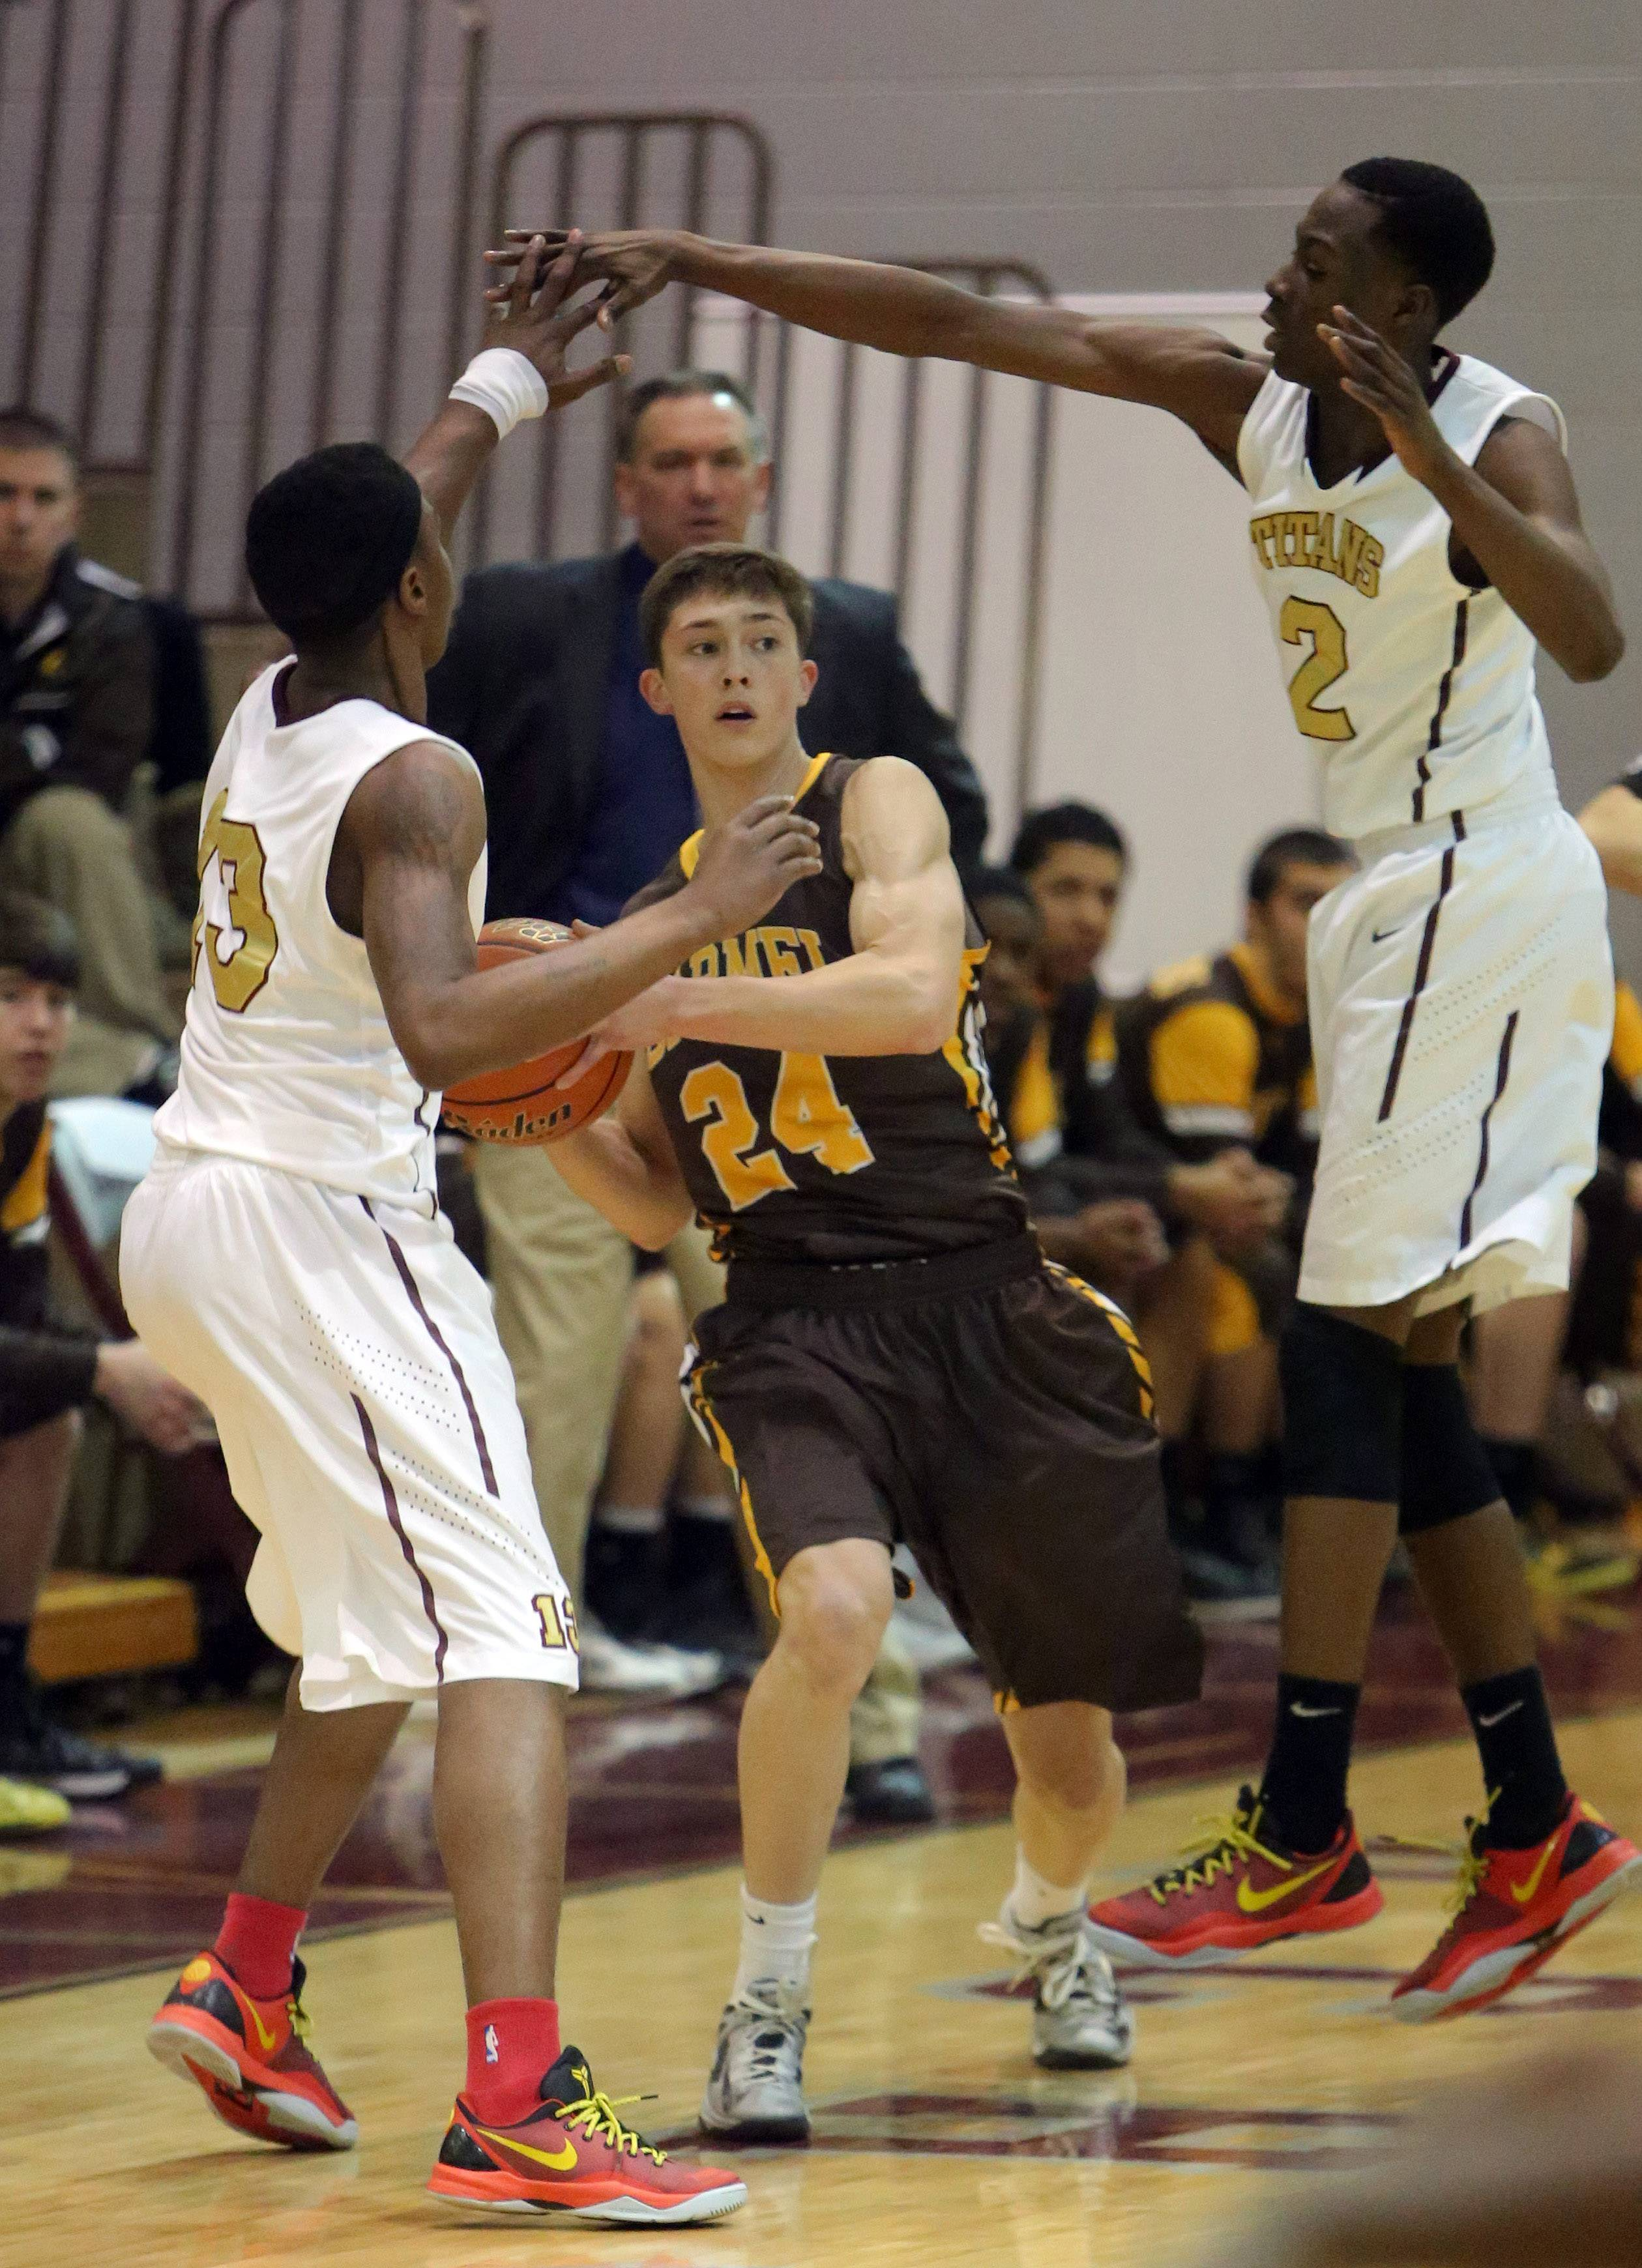 Carmel's Billy Kirby, middle, looks to pass as Uplift's Robert Gordon and Daniel Suetan defend.